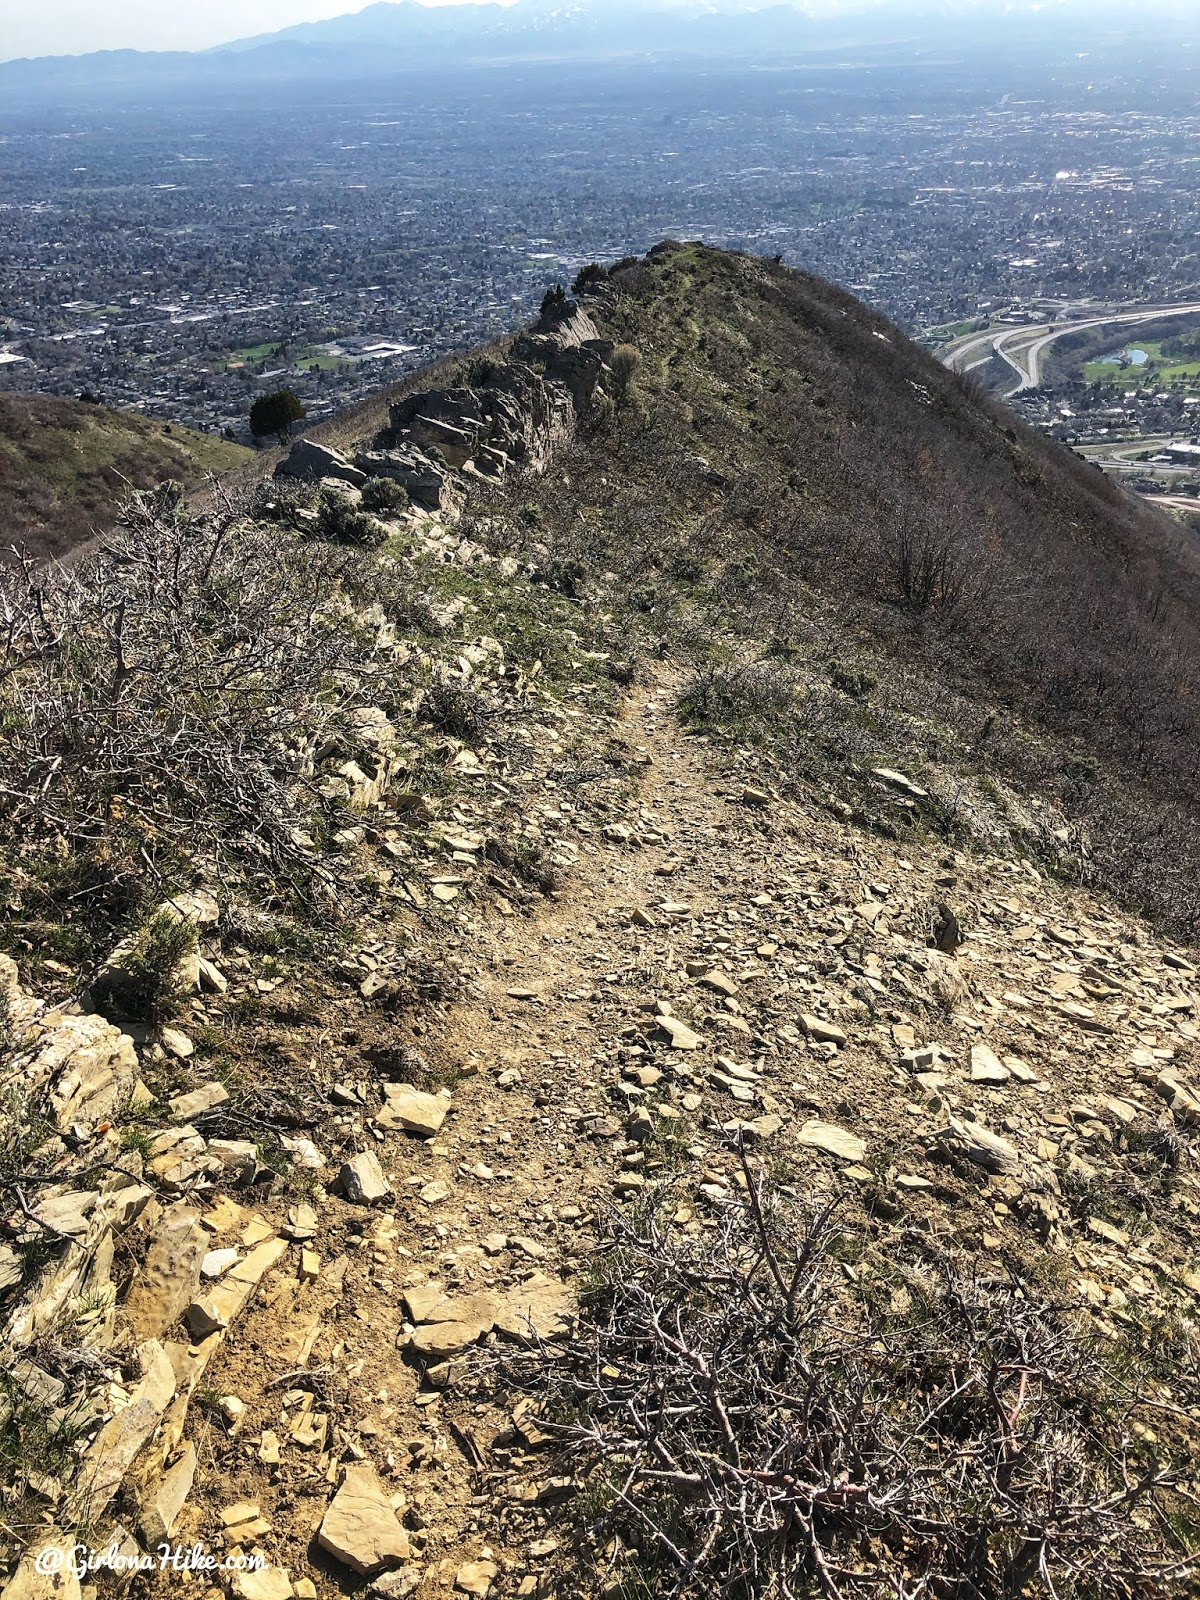 Hiking to Parley's Canyon Overlook